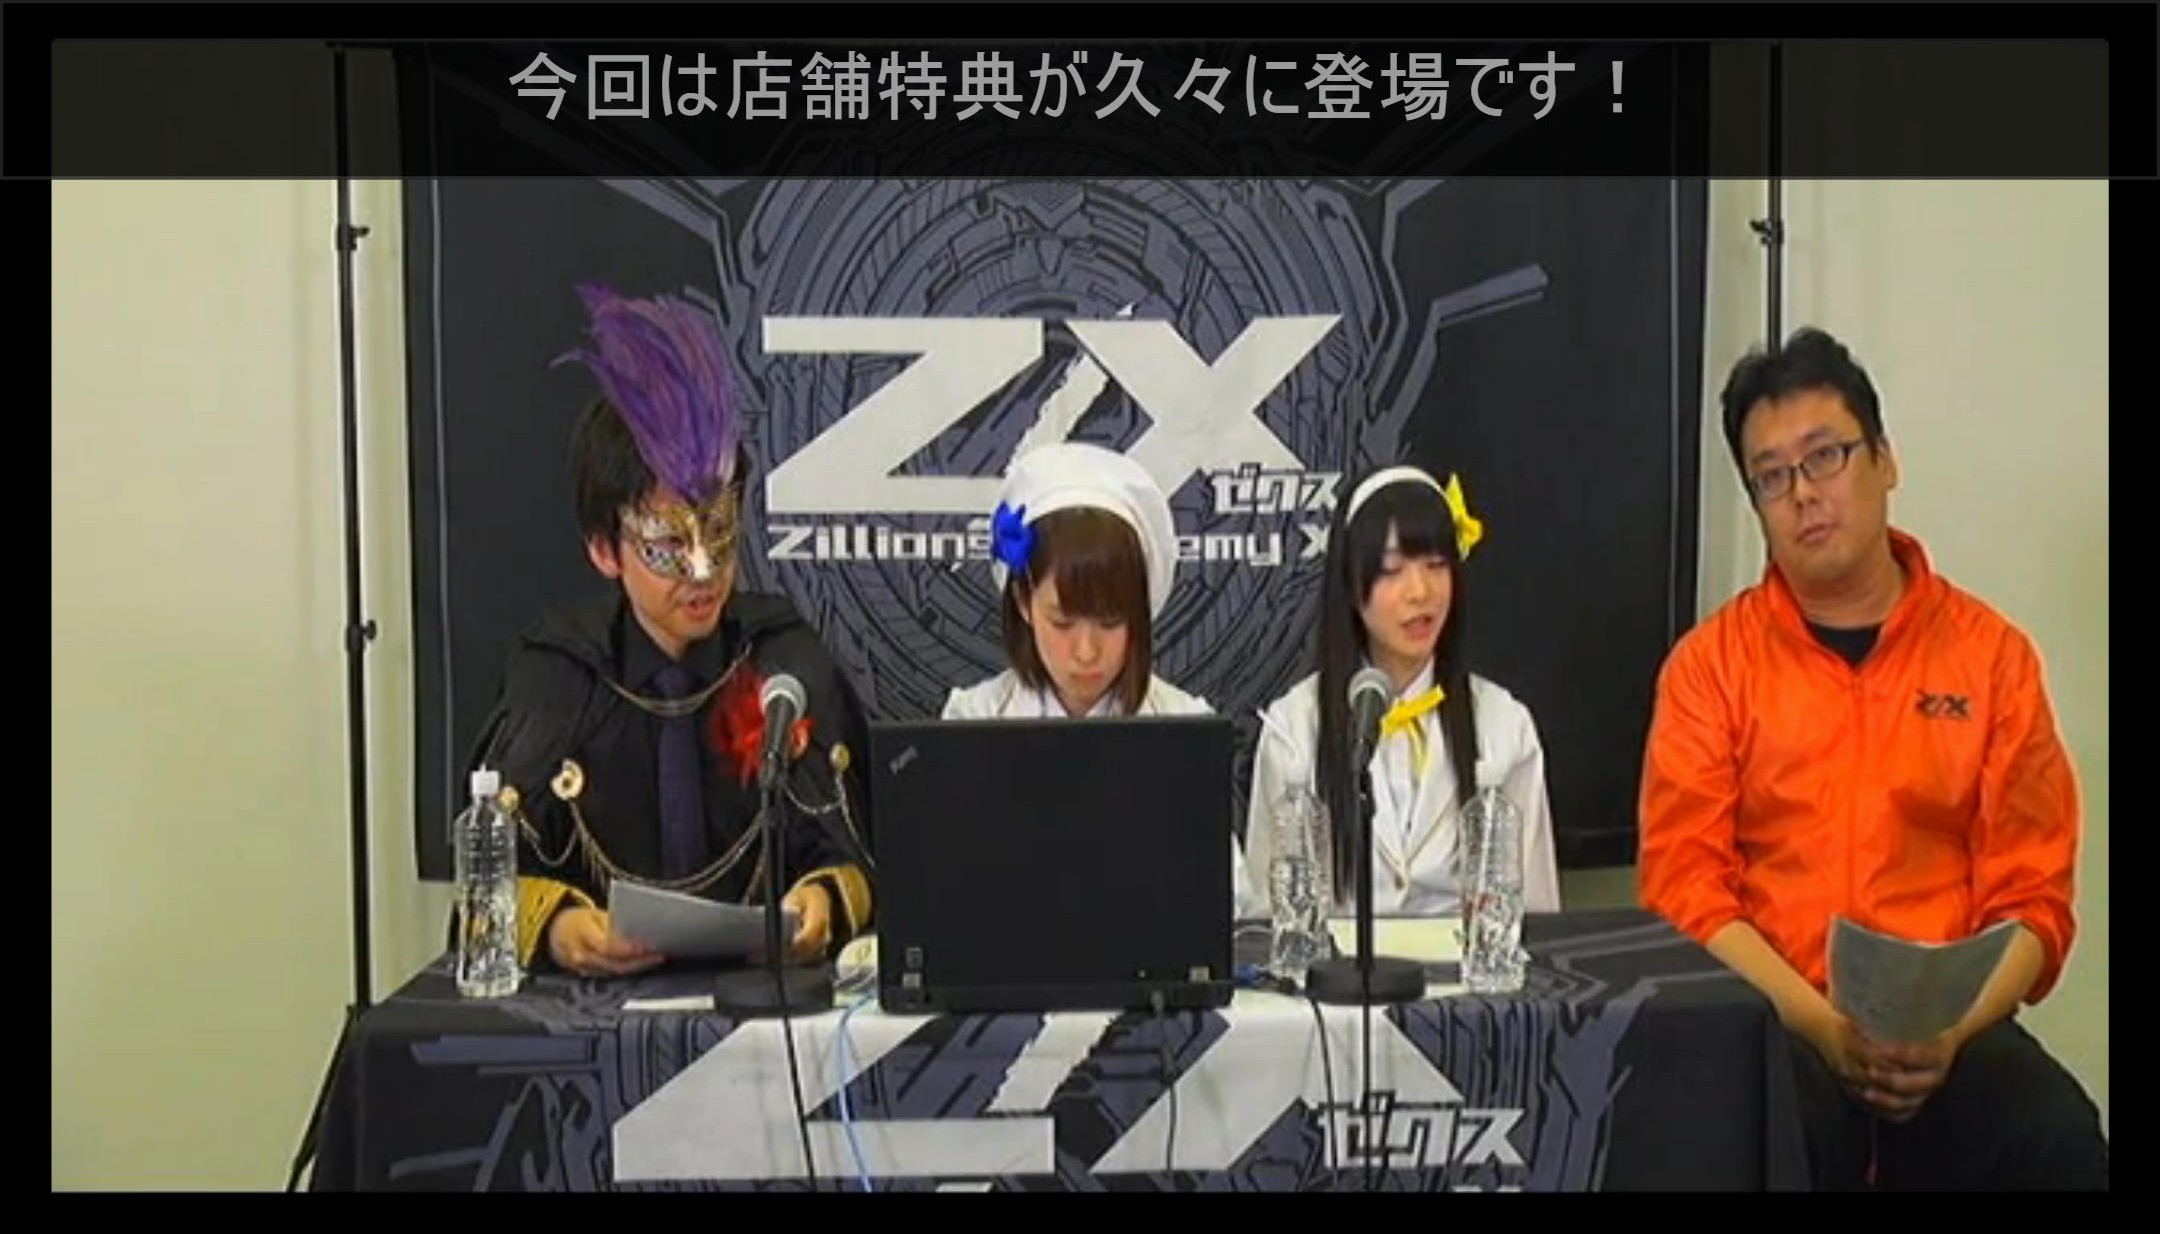 zx-ignition-broadcast-1700510-107.jpg